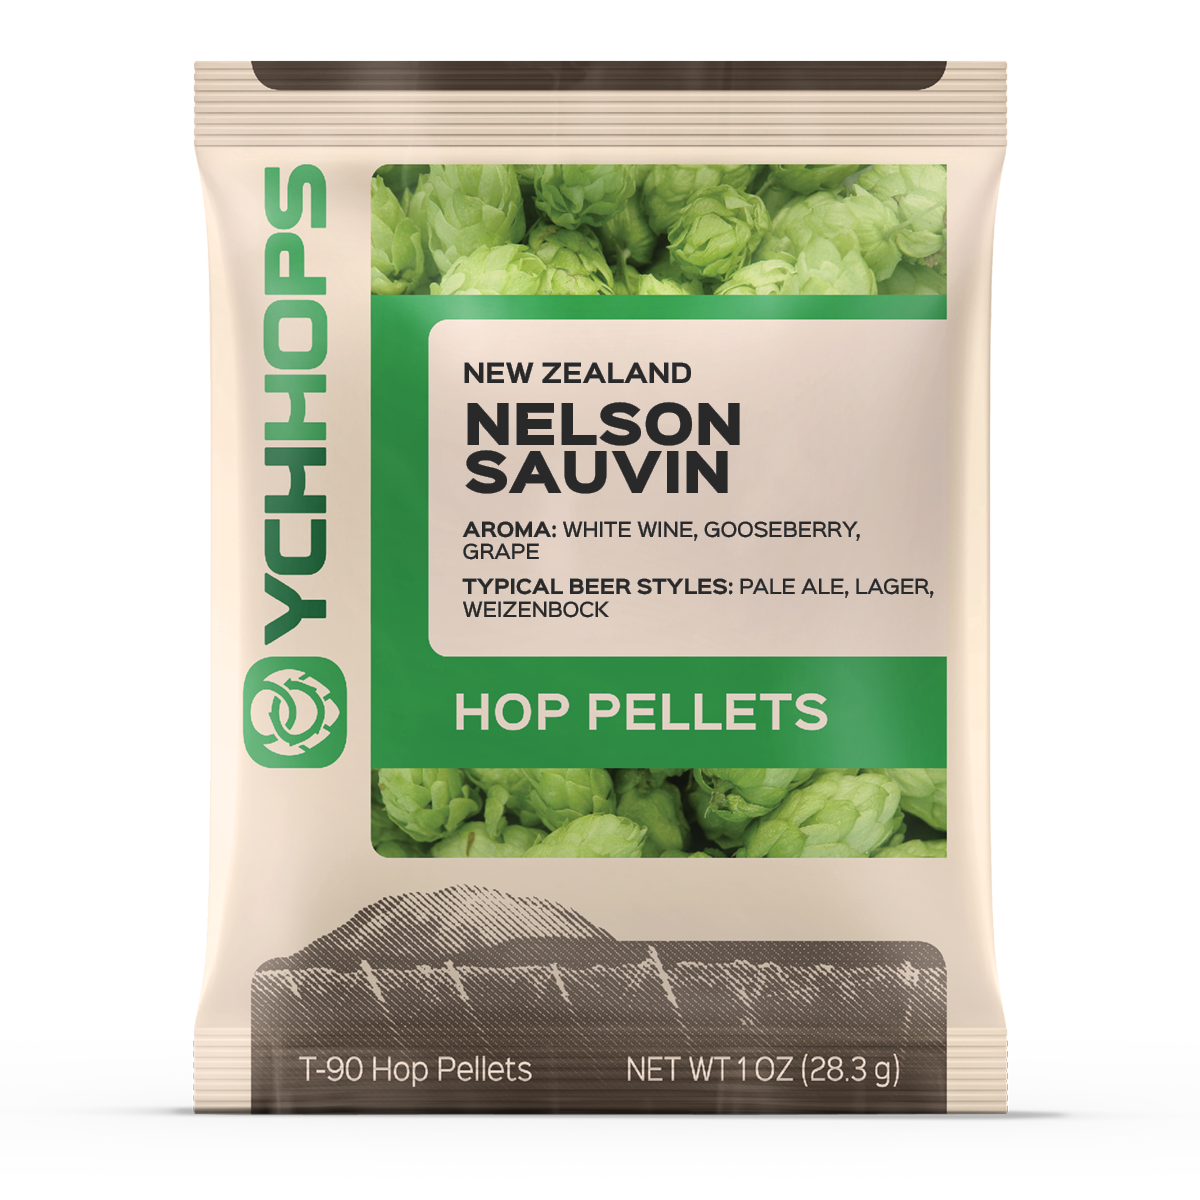 NZ Nelson Sauvin:1oz Pellets (1)